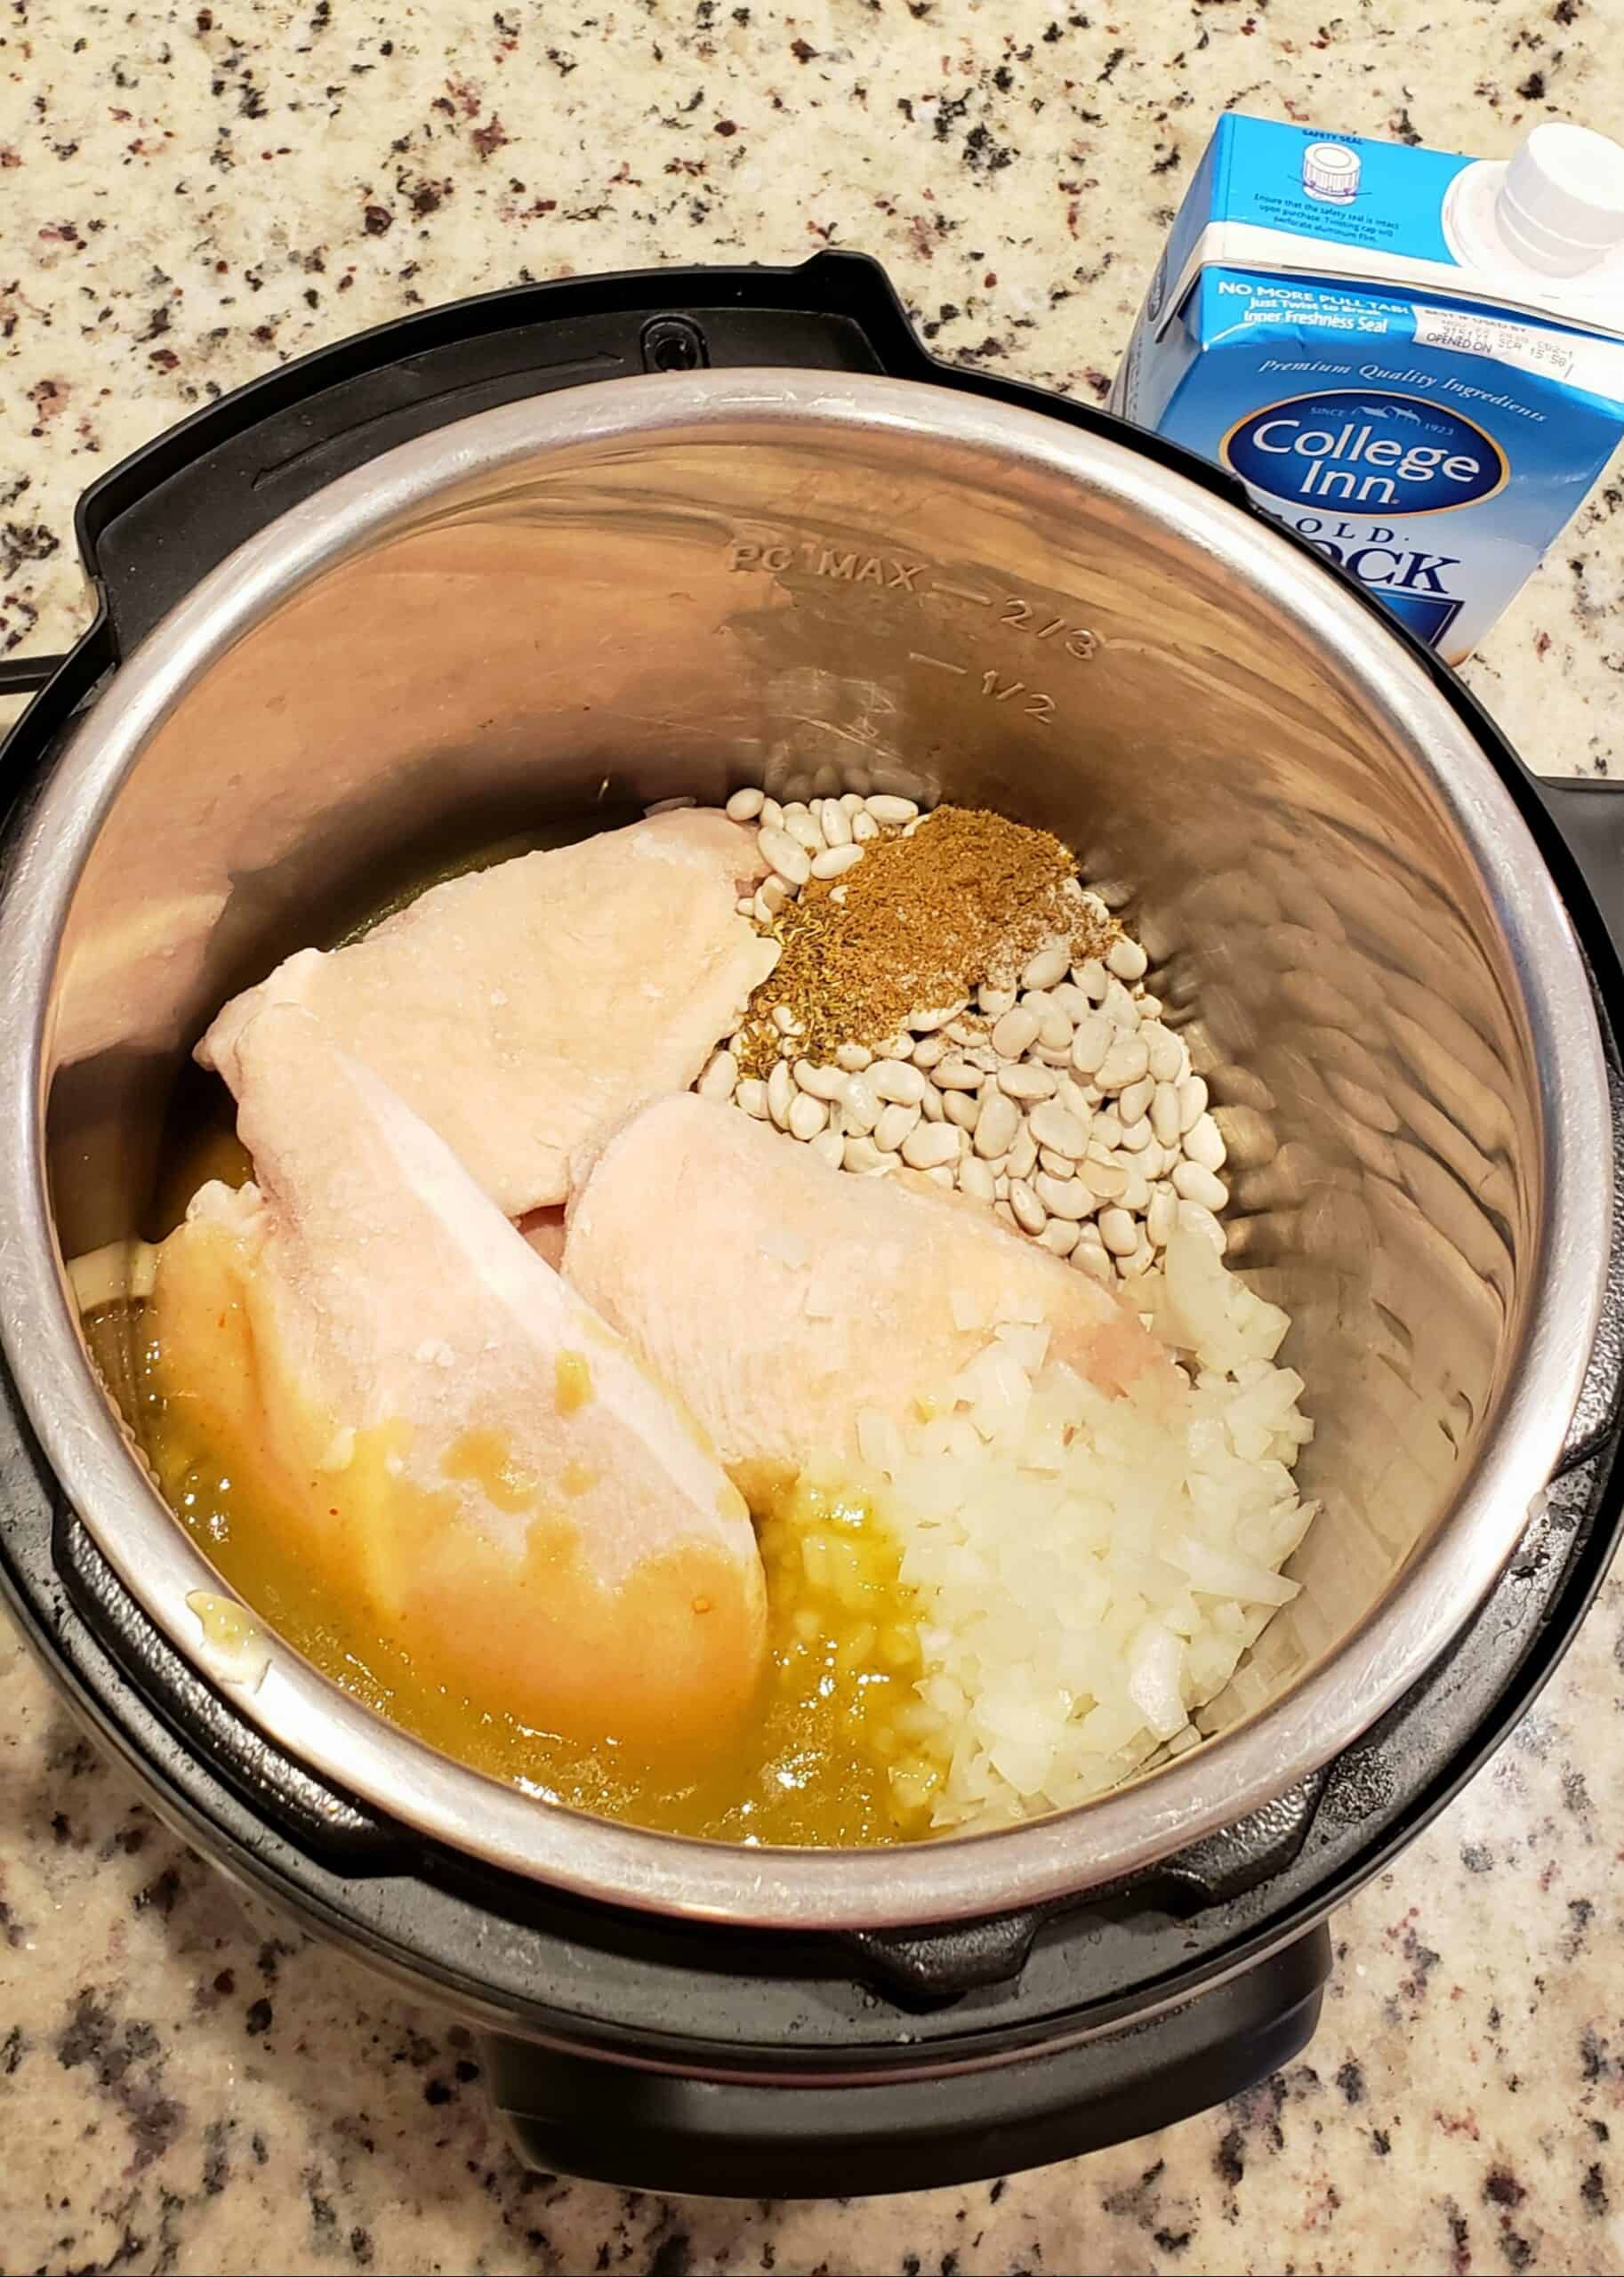 All ingredients for Instant Pot White Bean and Chicken Chili before cooking